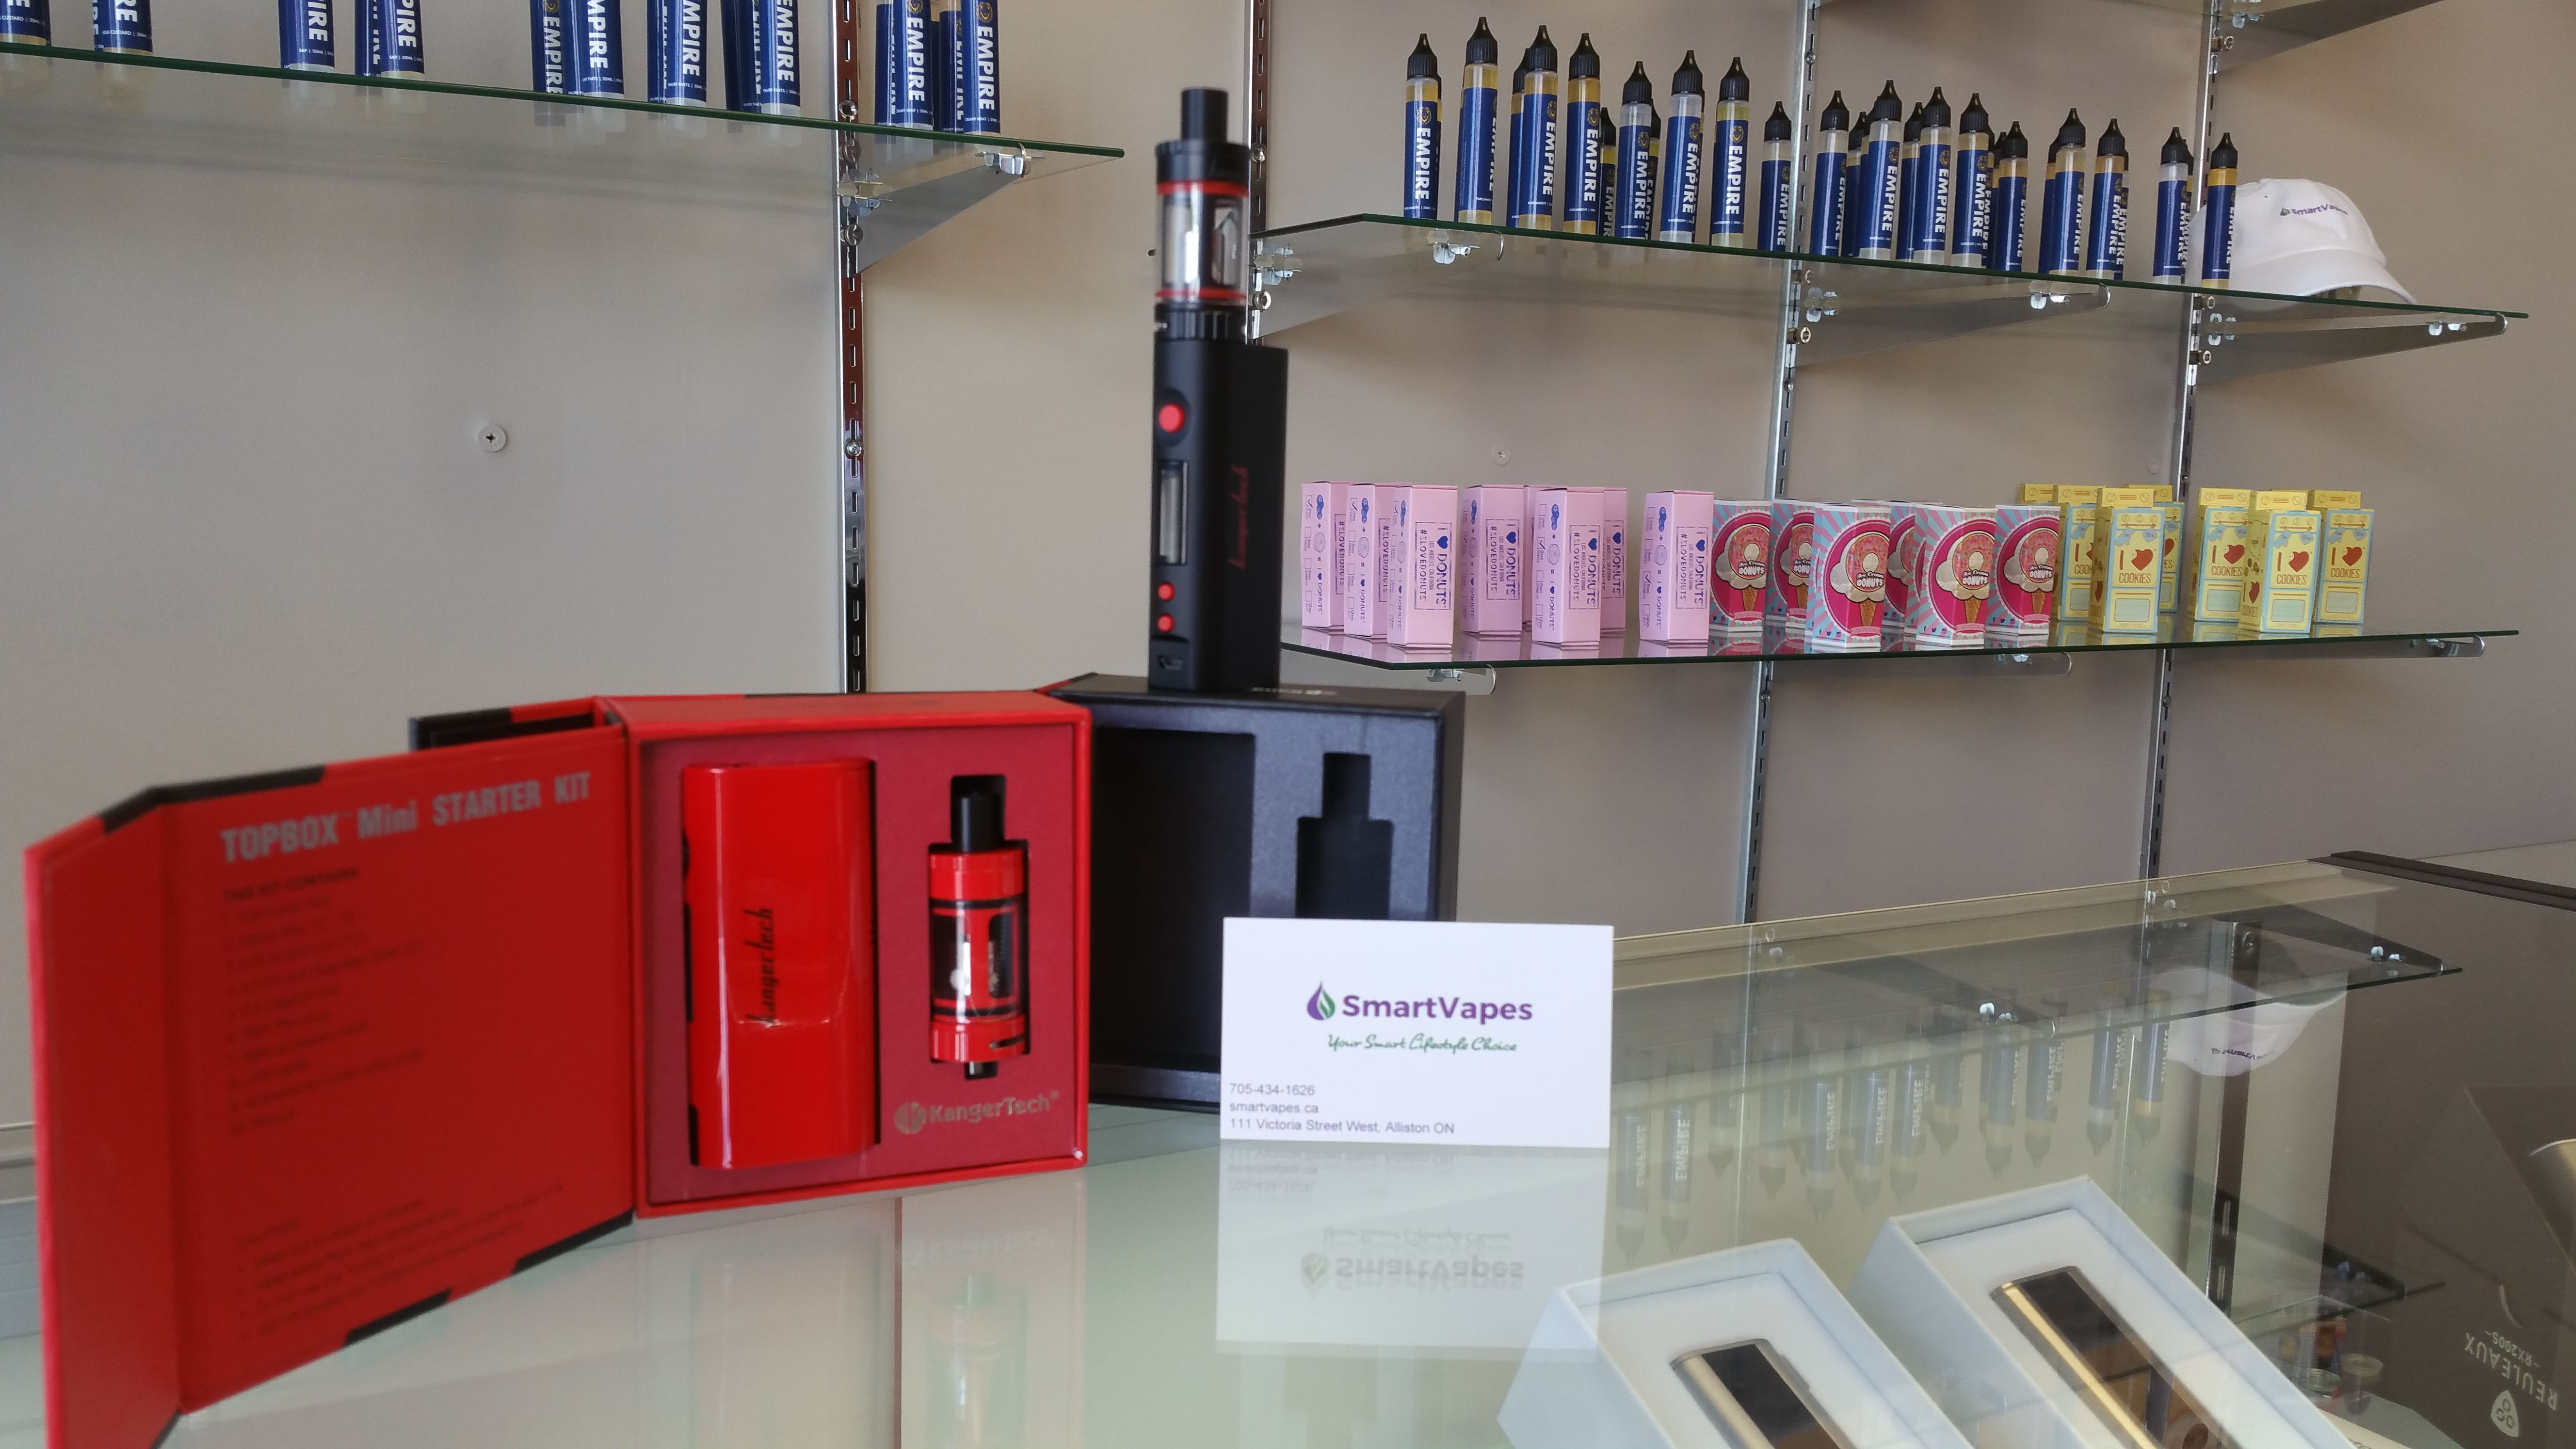 KangerTech Top Box Mini, available in white, black and red.... sweet